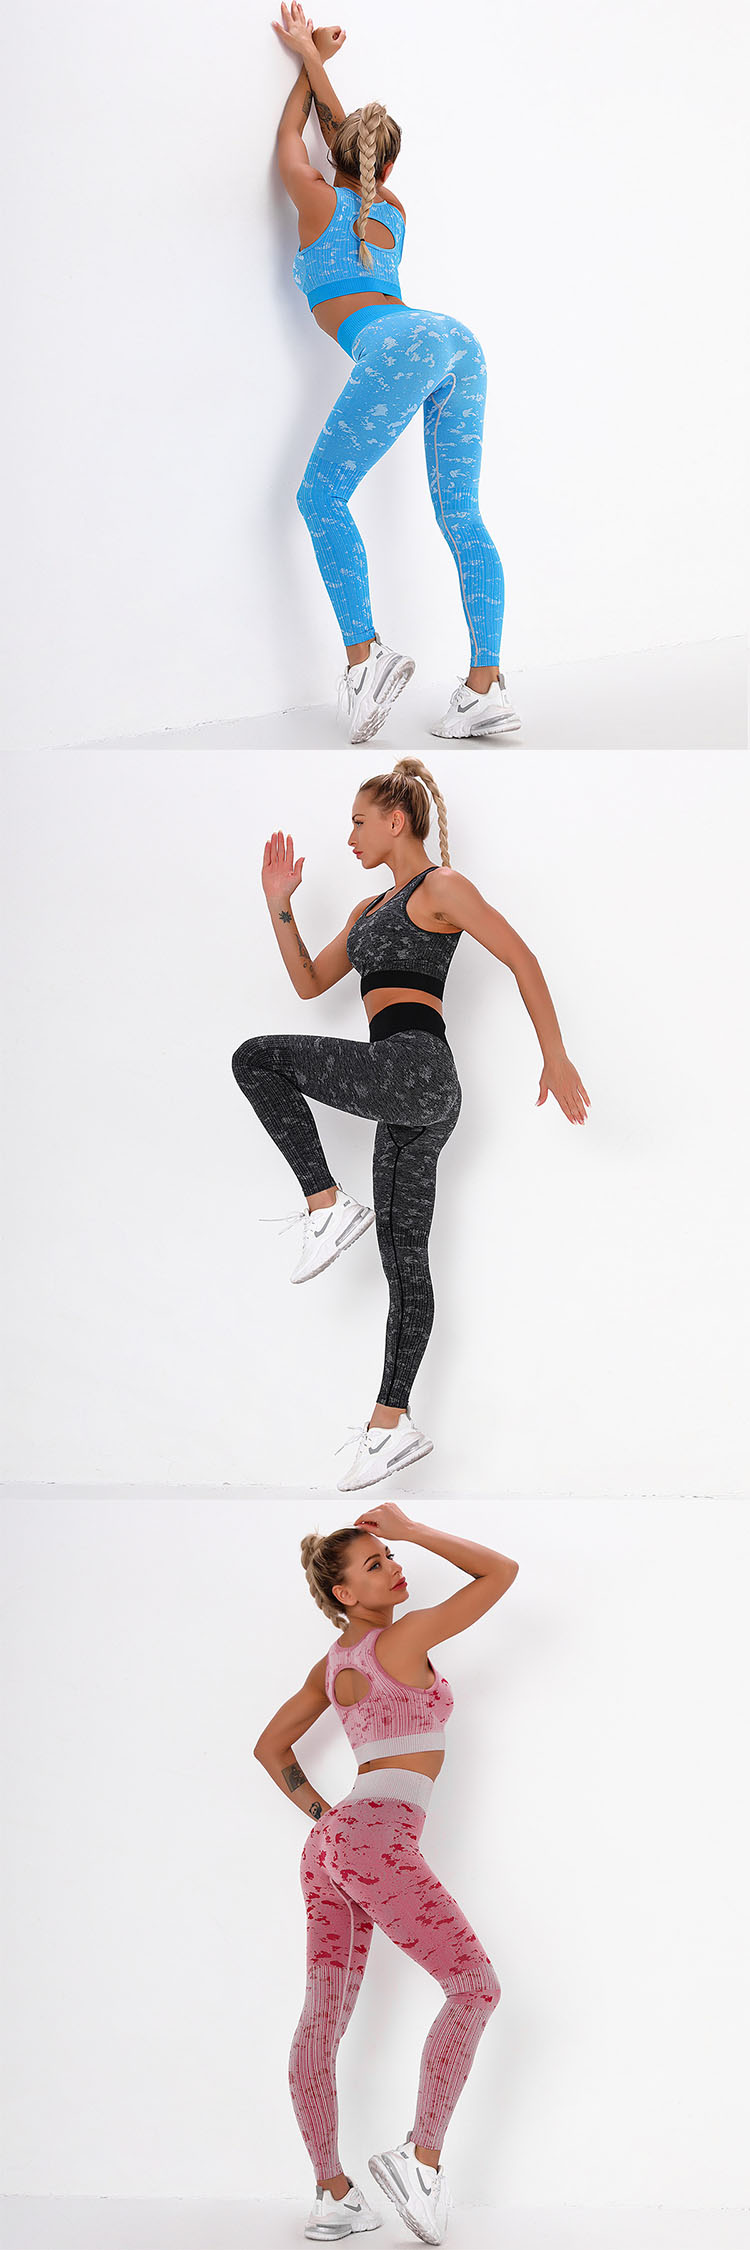 The new pressure shunt crotch, embrace the peach, guard without embarrassment, and yoga exercises are more at ease.